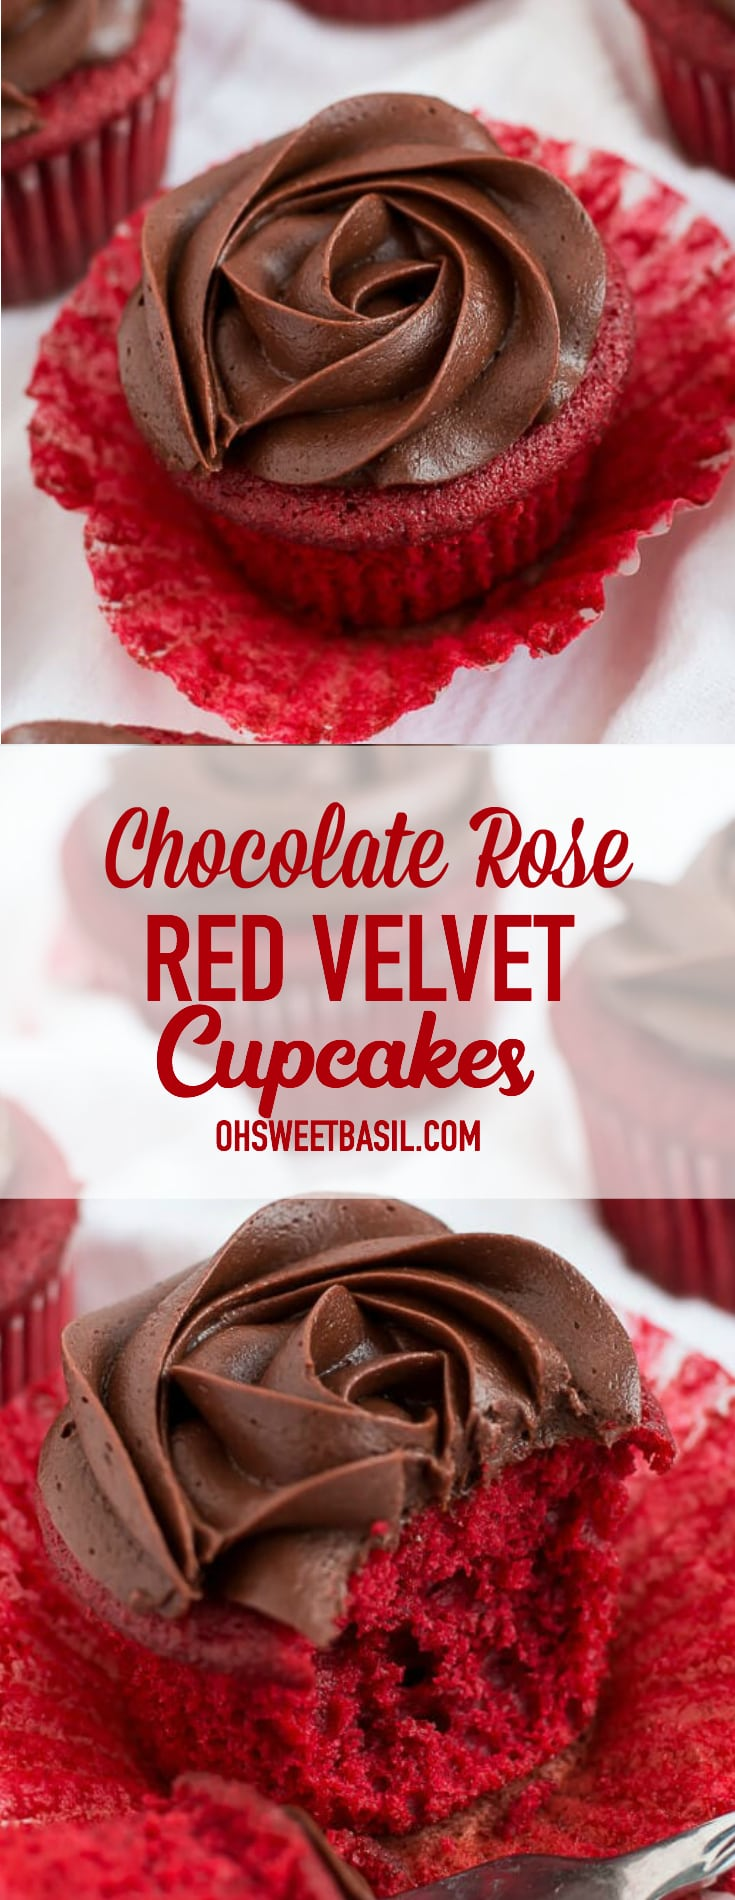 Red Velvet Cupcakes with a chocolate rose on top